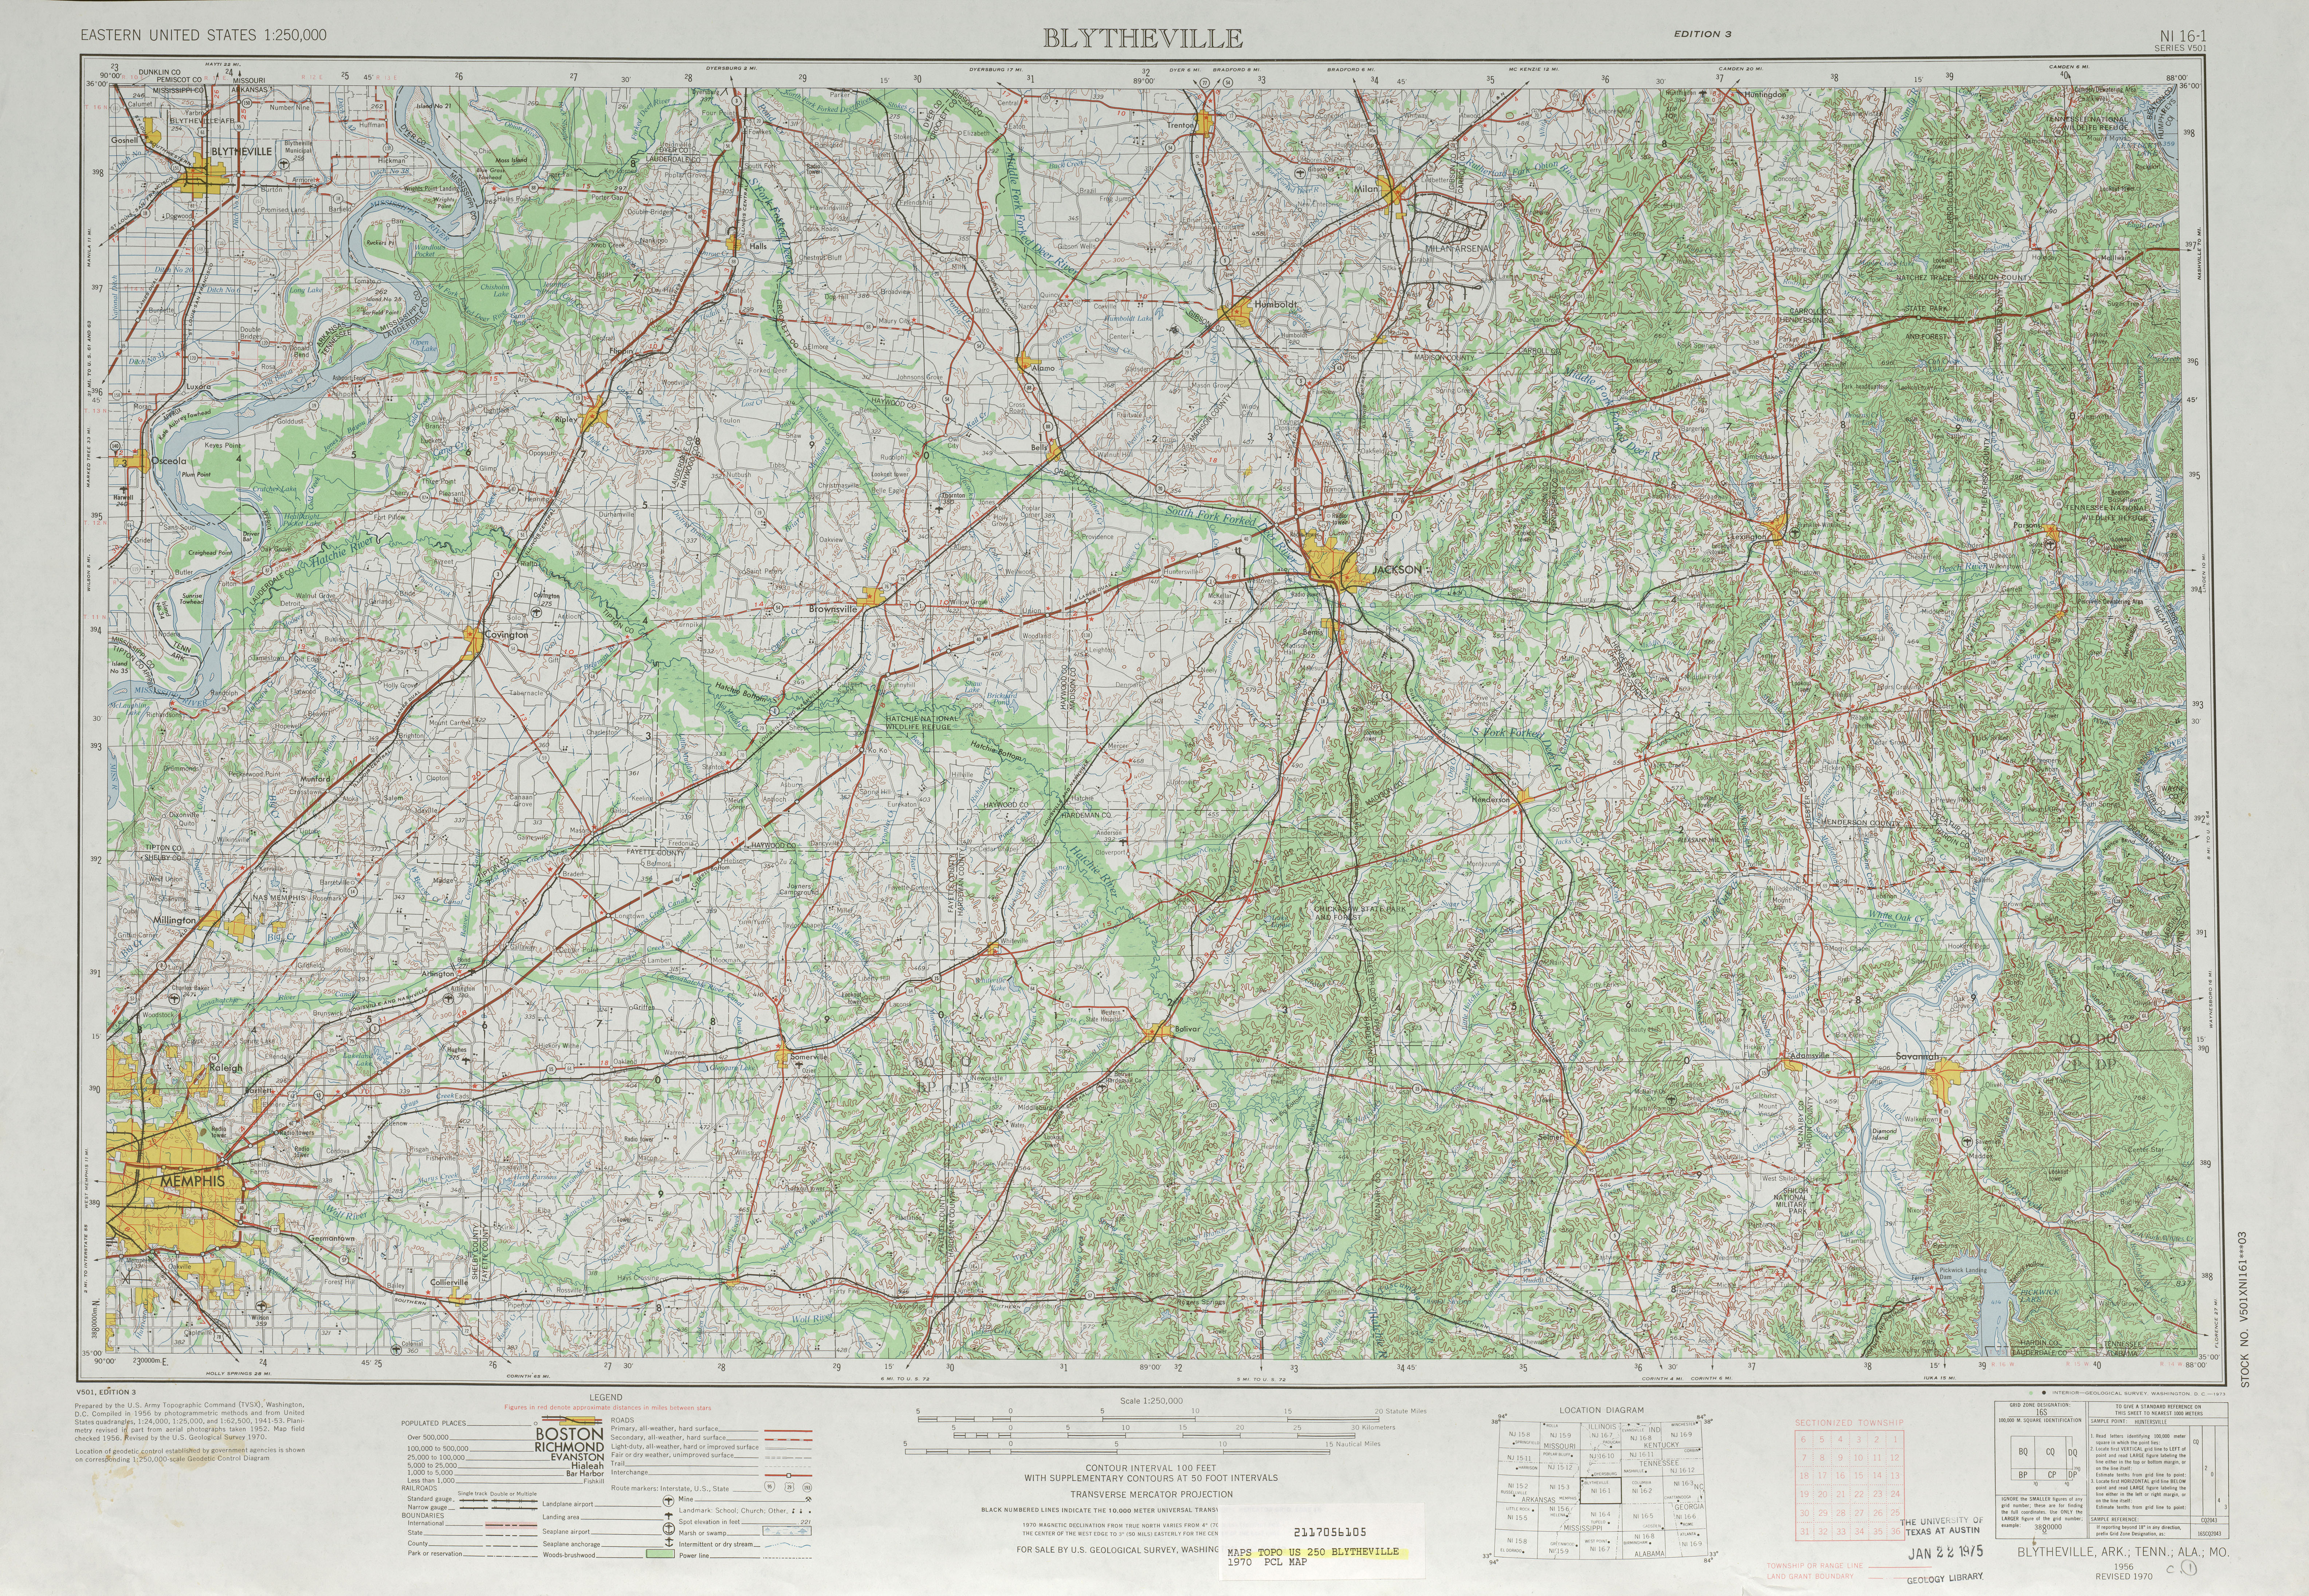 Blytheville Topographic Map Sheet, United States 1970